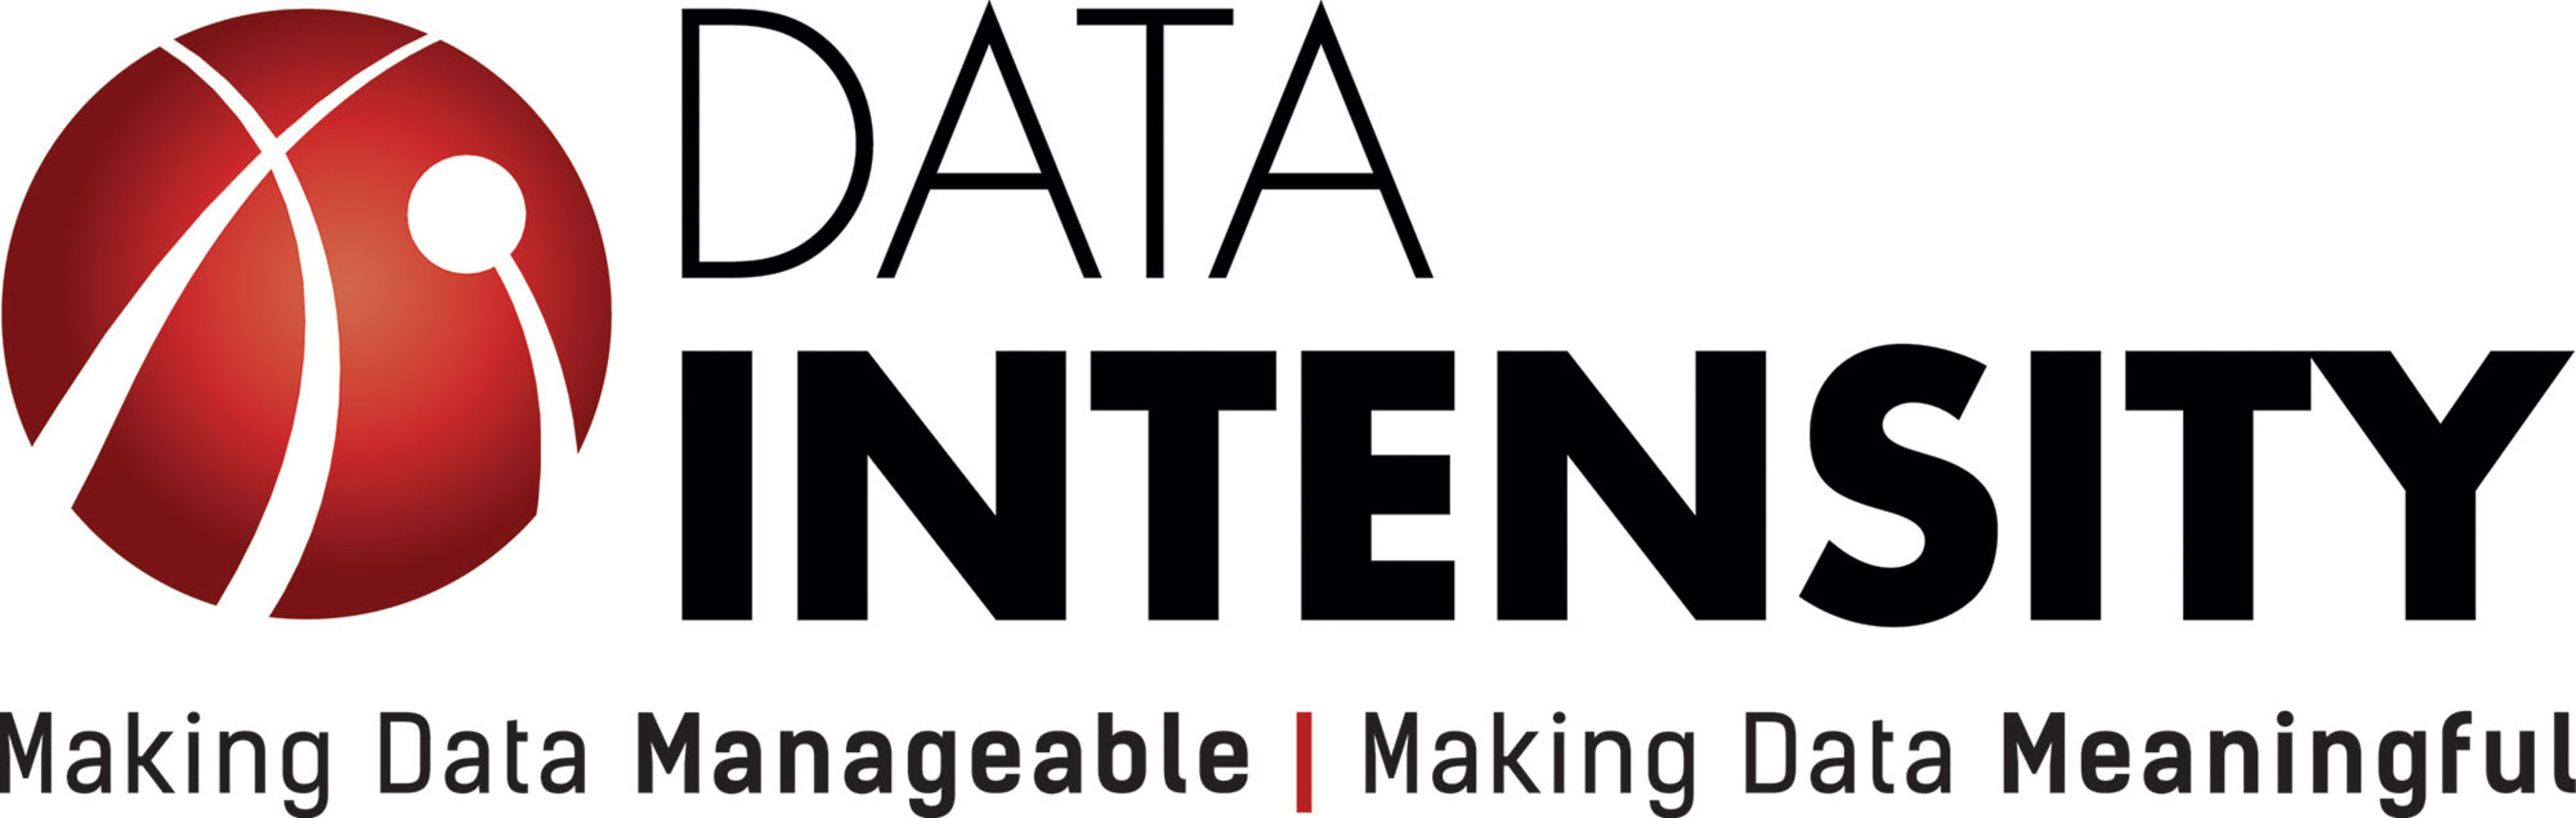 Data Intensity is an industry leader in analytics, business intelligence, and managed and cloud services for ...